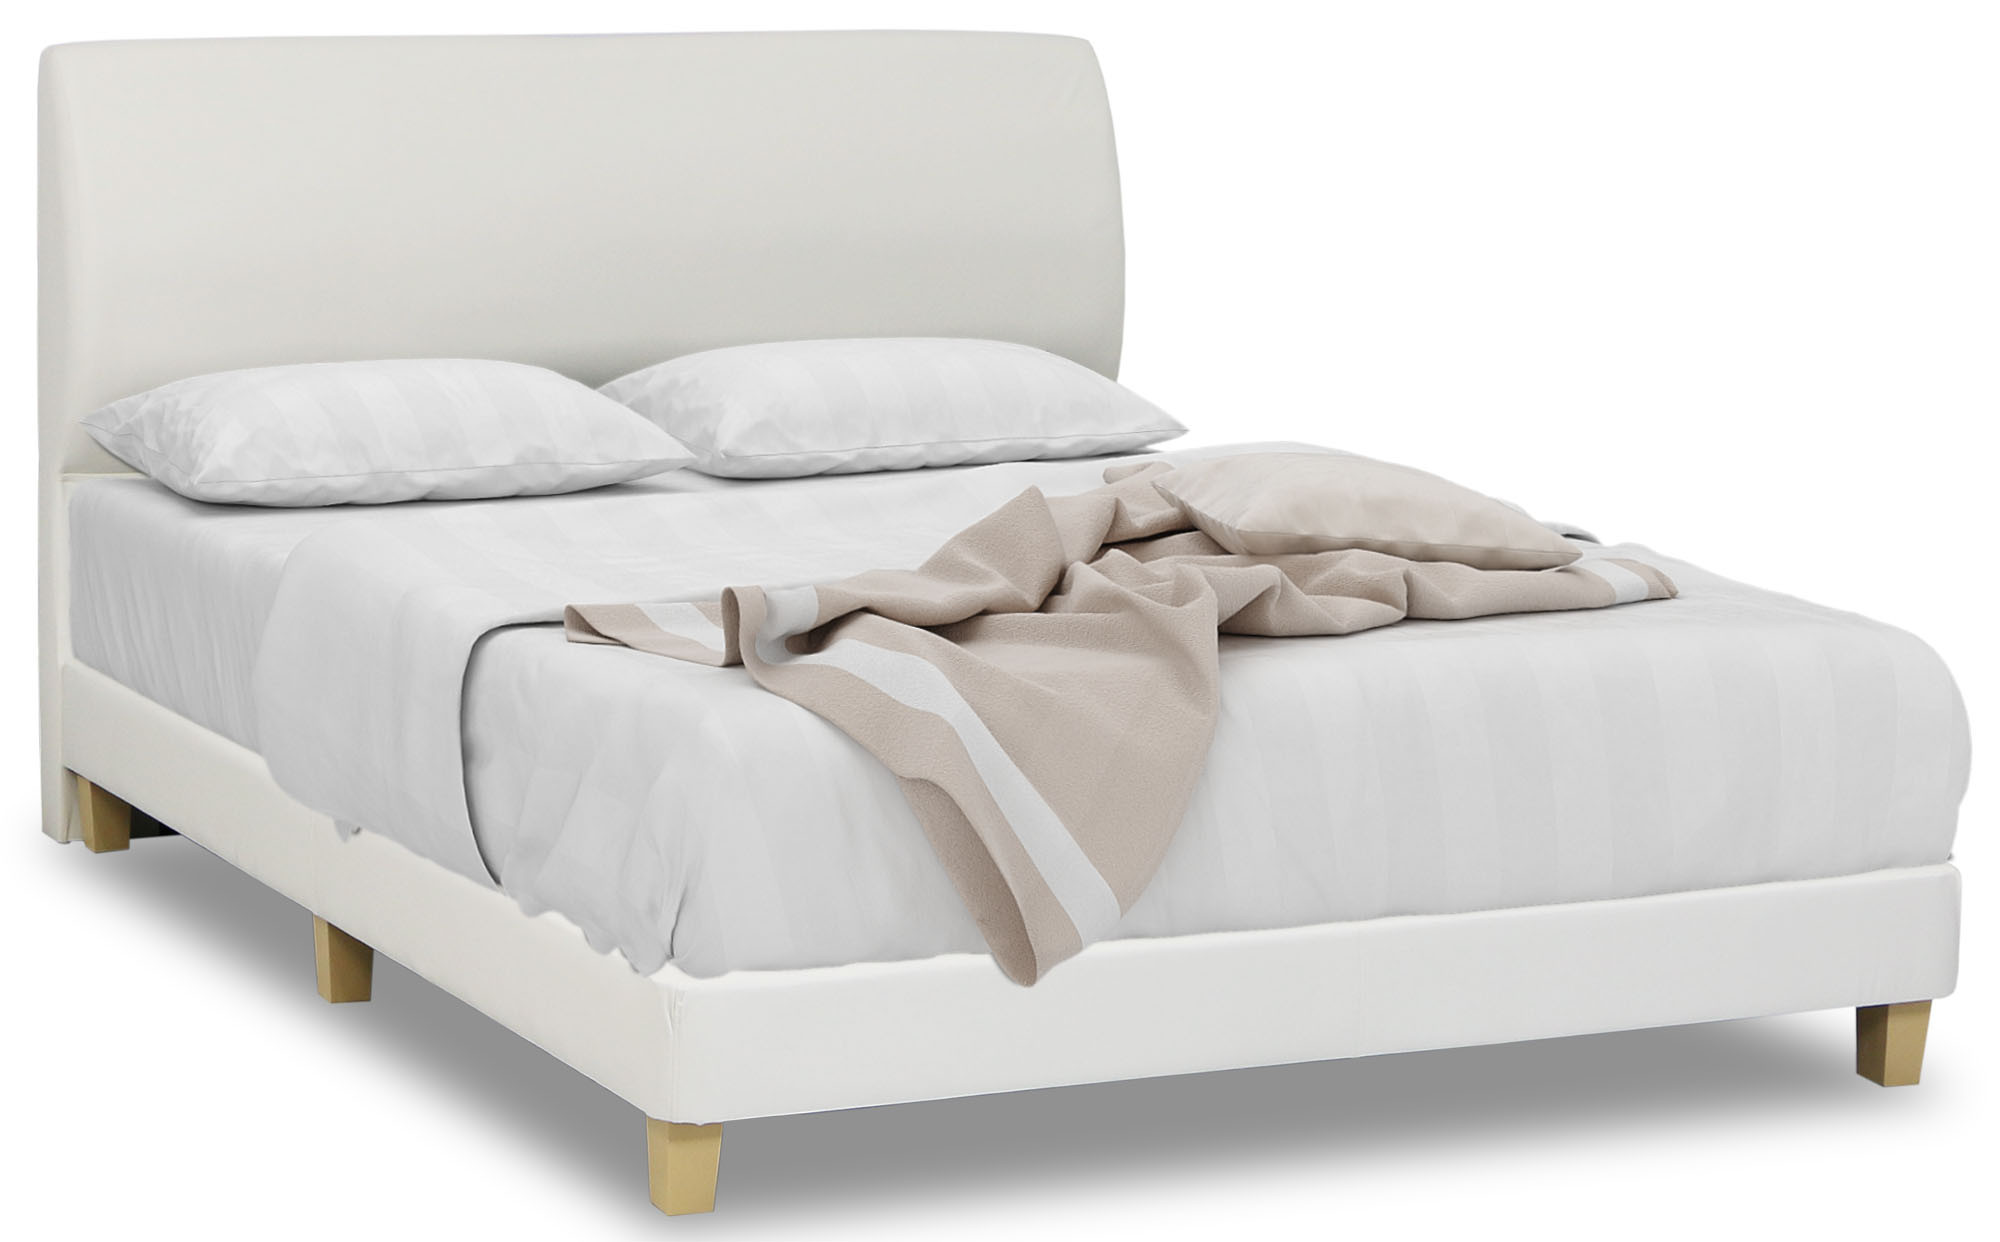 Aldo Faux Leather Bed Frame Furniture & Home Décor